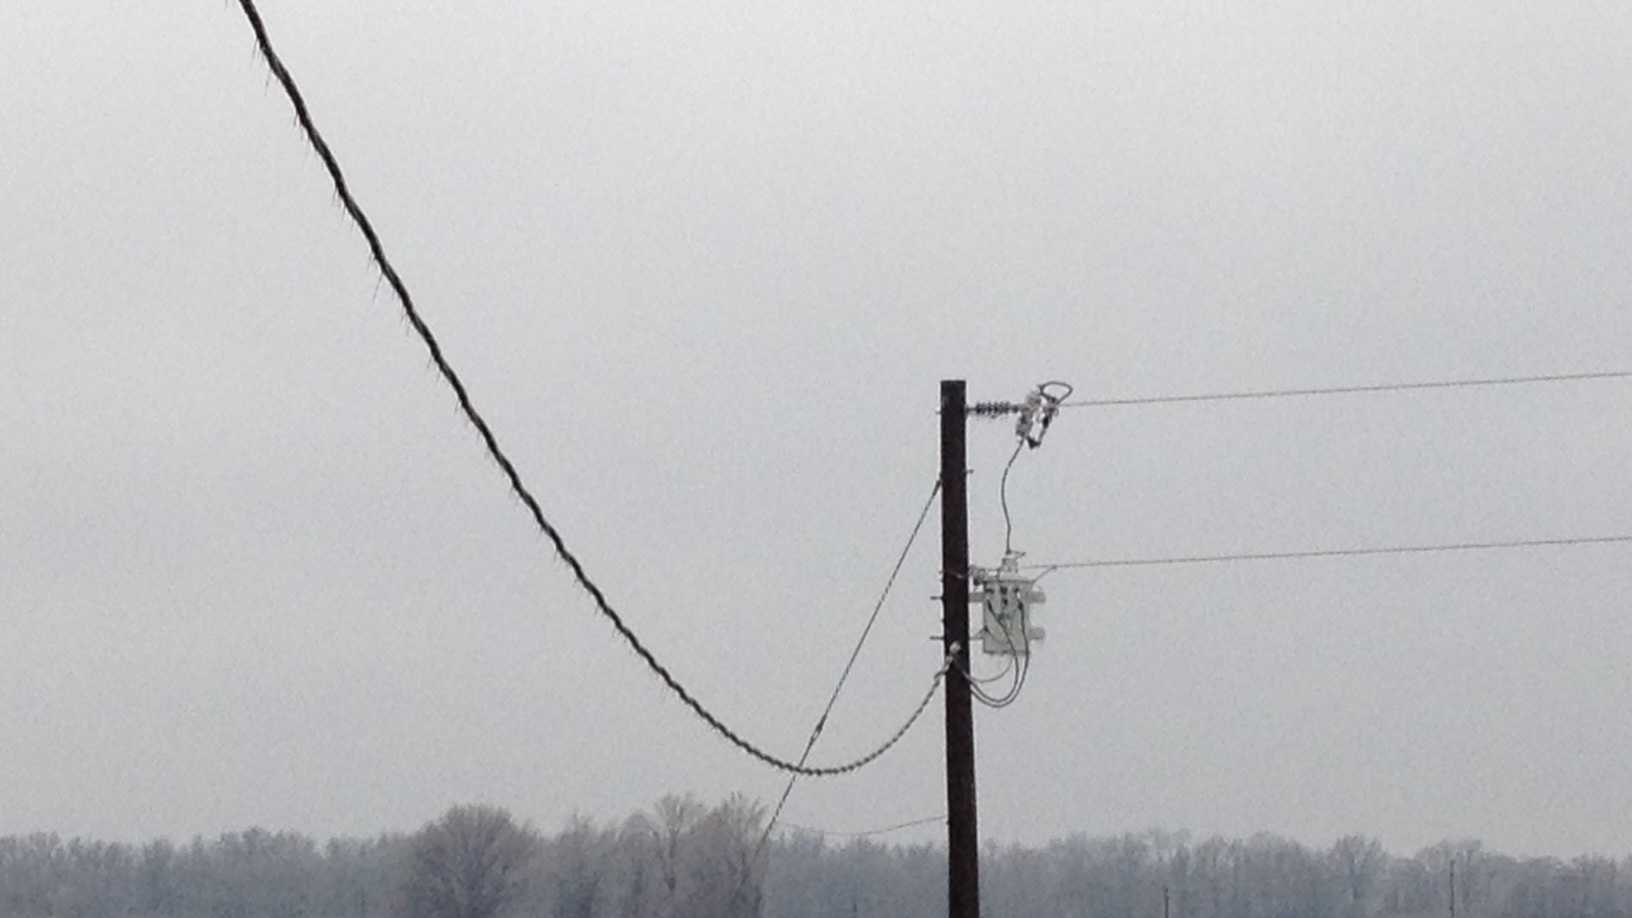 icy power lines